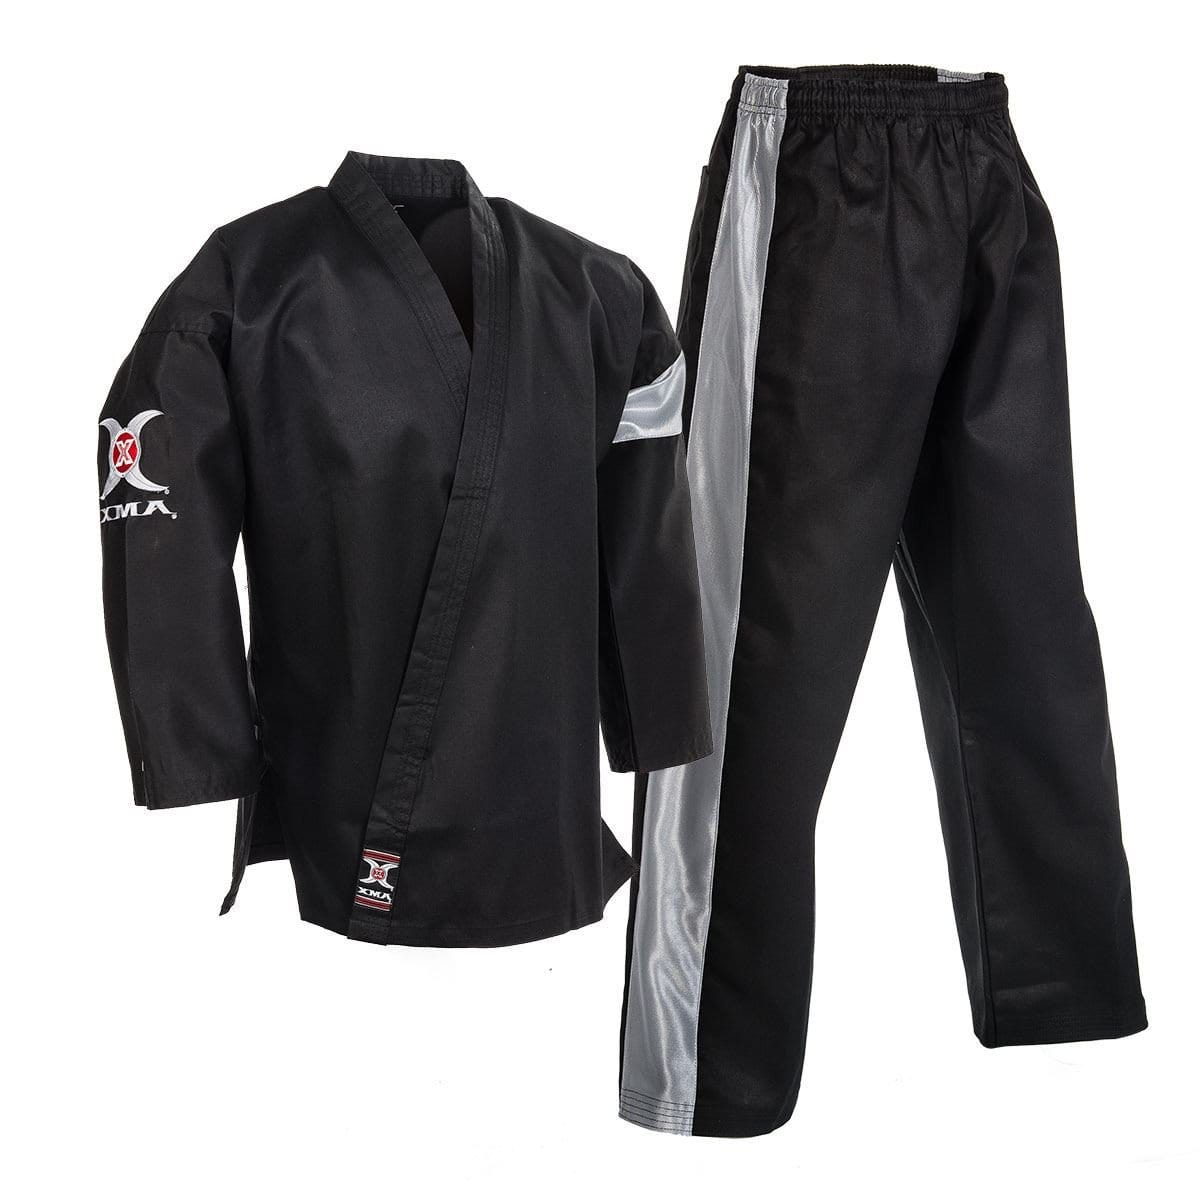 XMA Team Karate Uniform  All Sizes OLDSkool